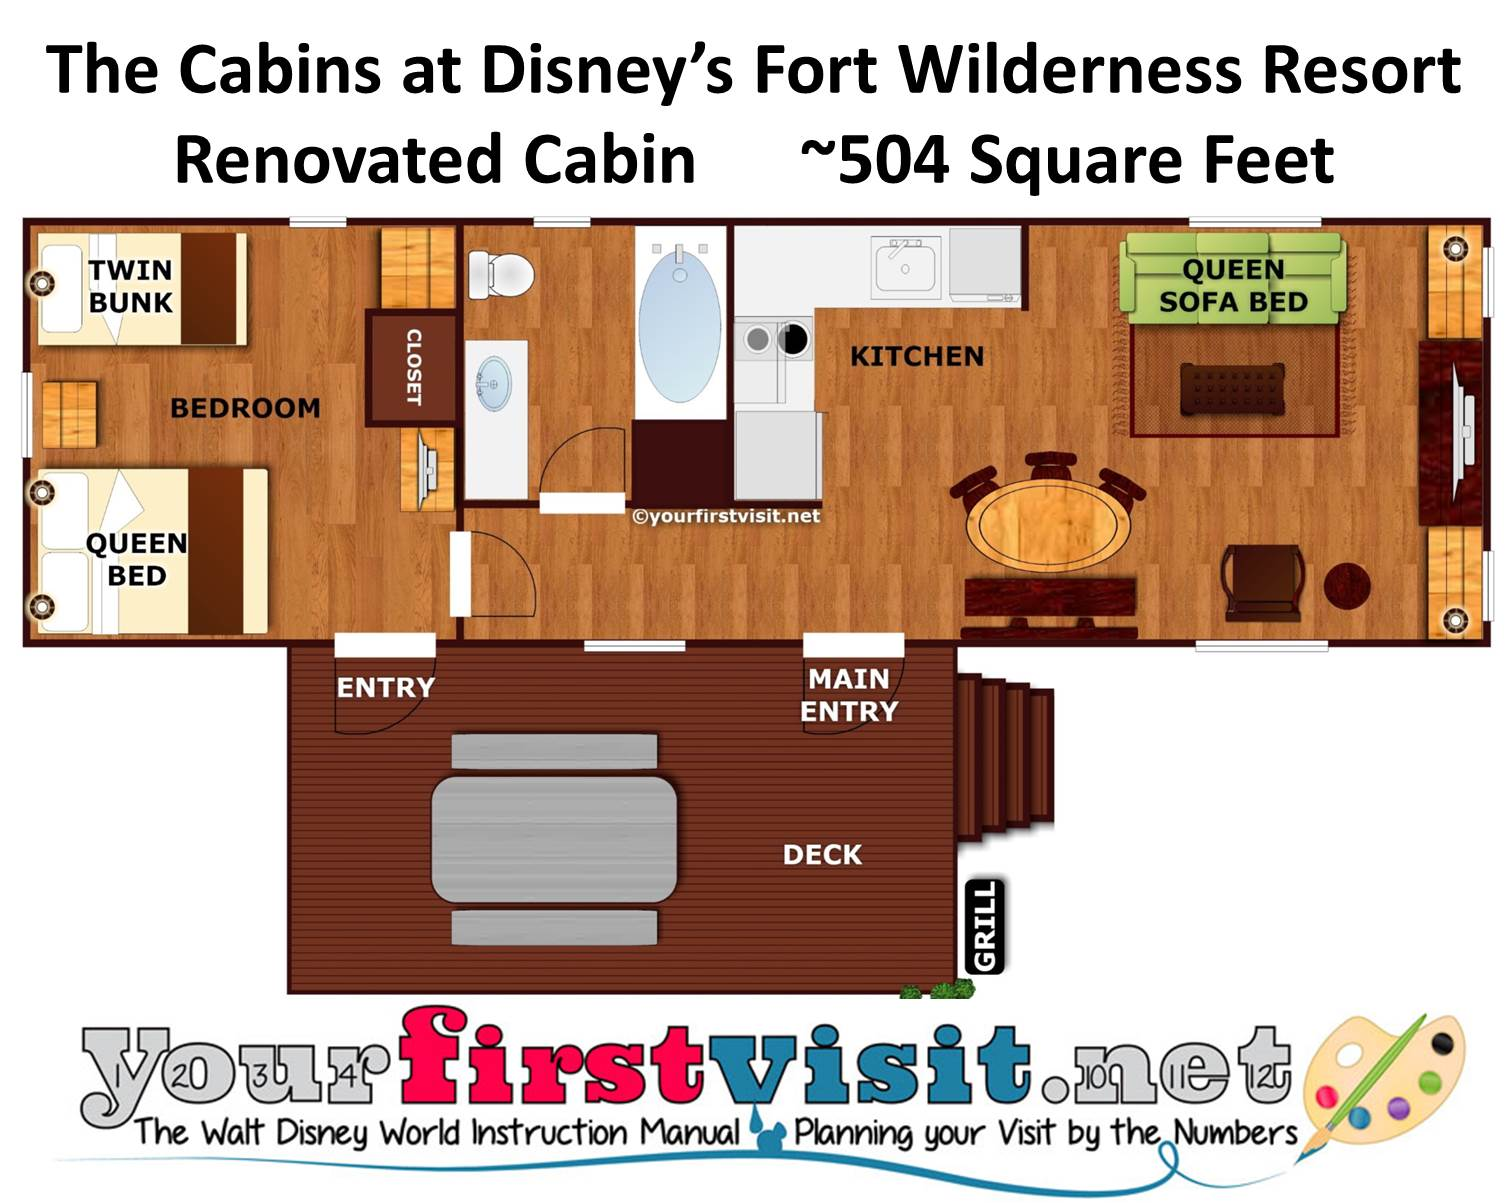 Floor Plan Renovated Cabins at Fort Wilderness from yourfirstvisit.net